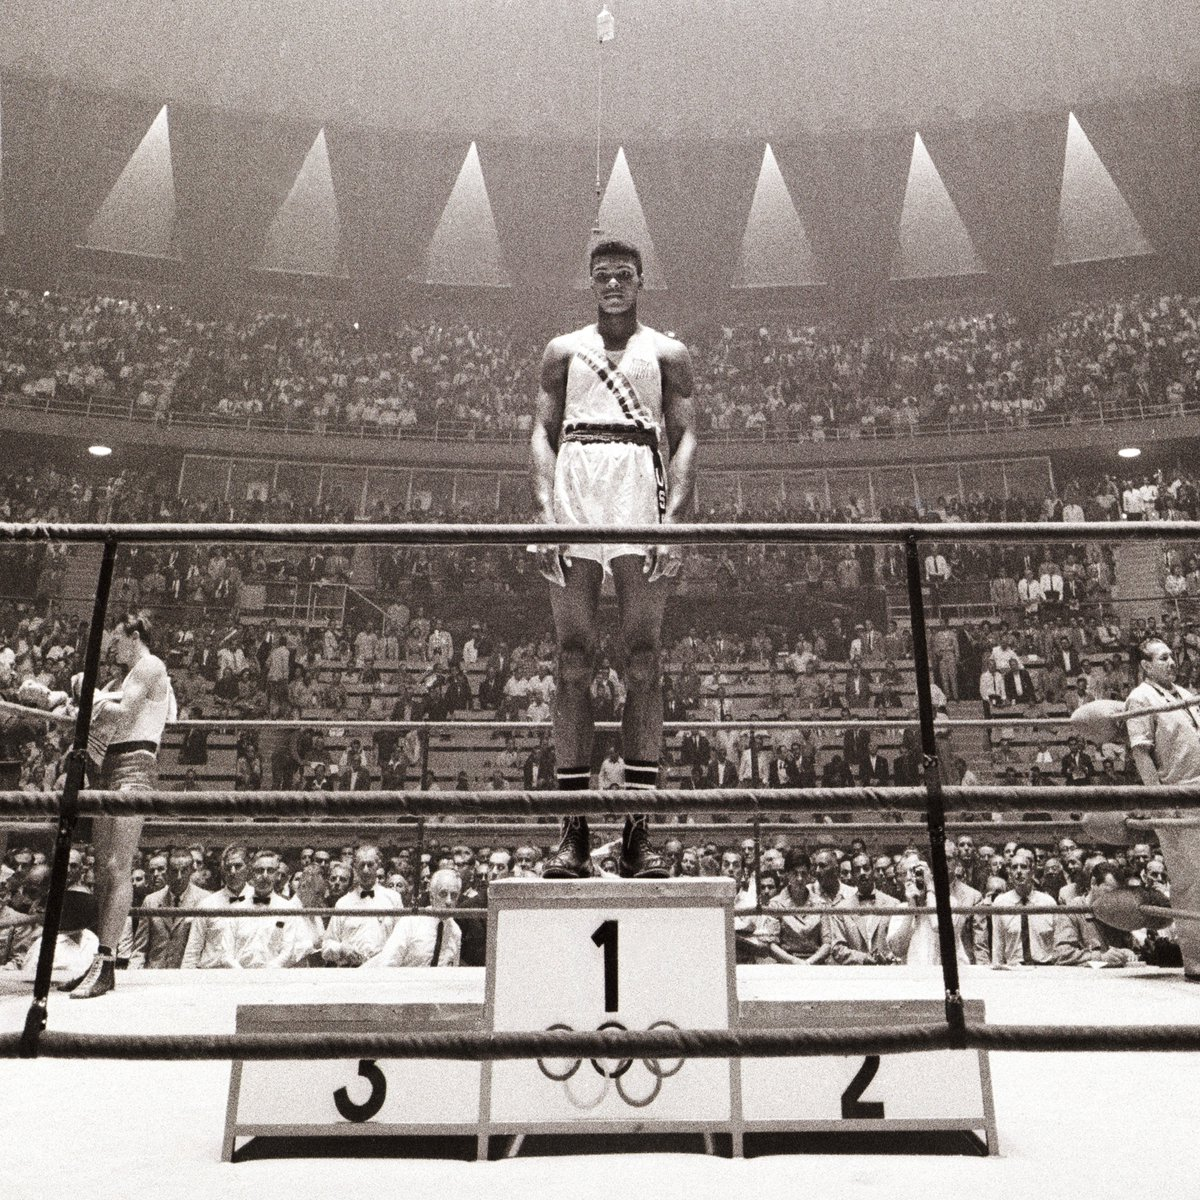 Muhammad Ali was born 79 years ago today. A legend among legends.